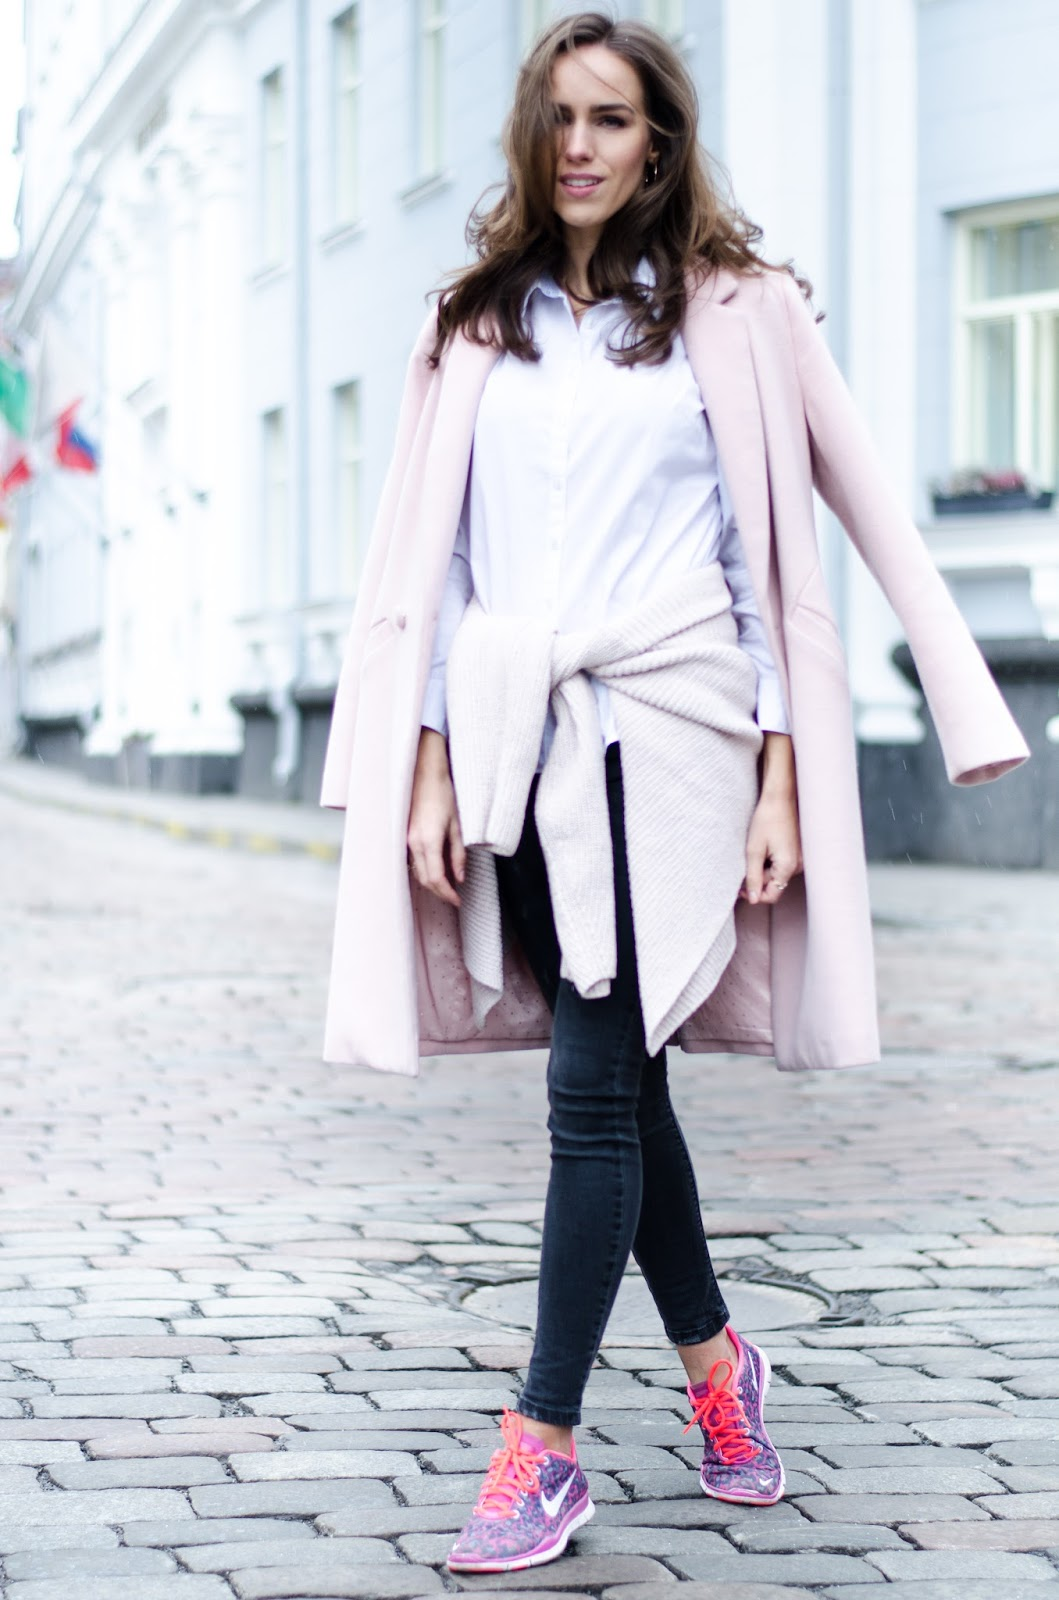 layered winter outfit sweatshirt around waist